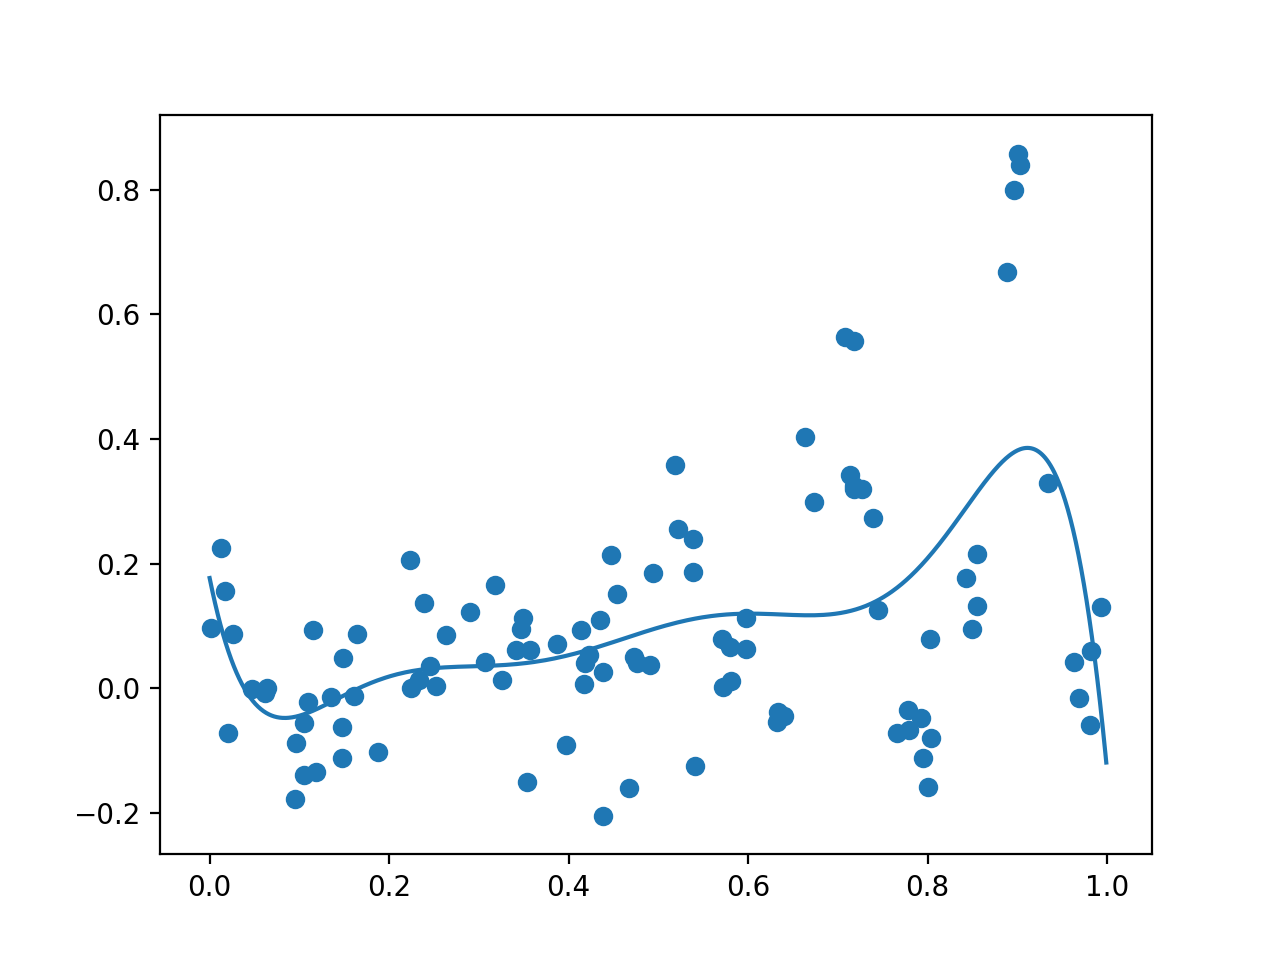 Plot of Initial Sample (dots) and Surrogate Function Across the Domain (line).